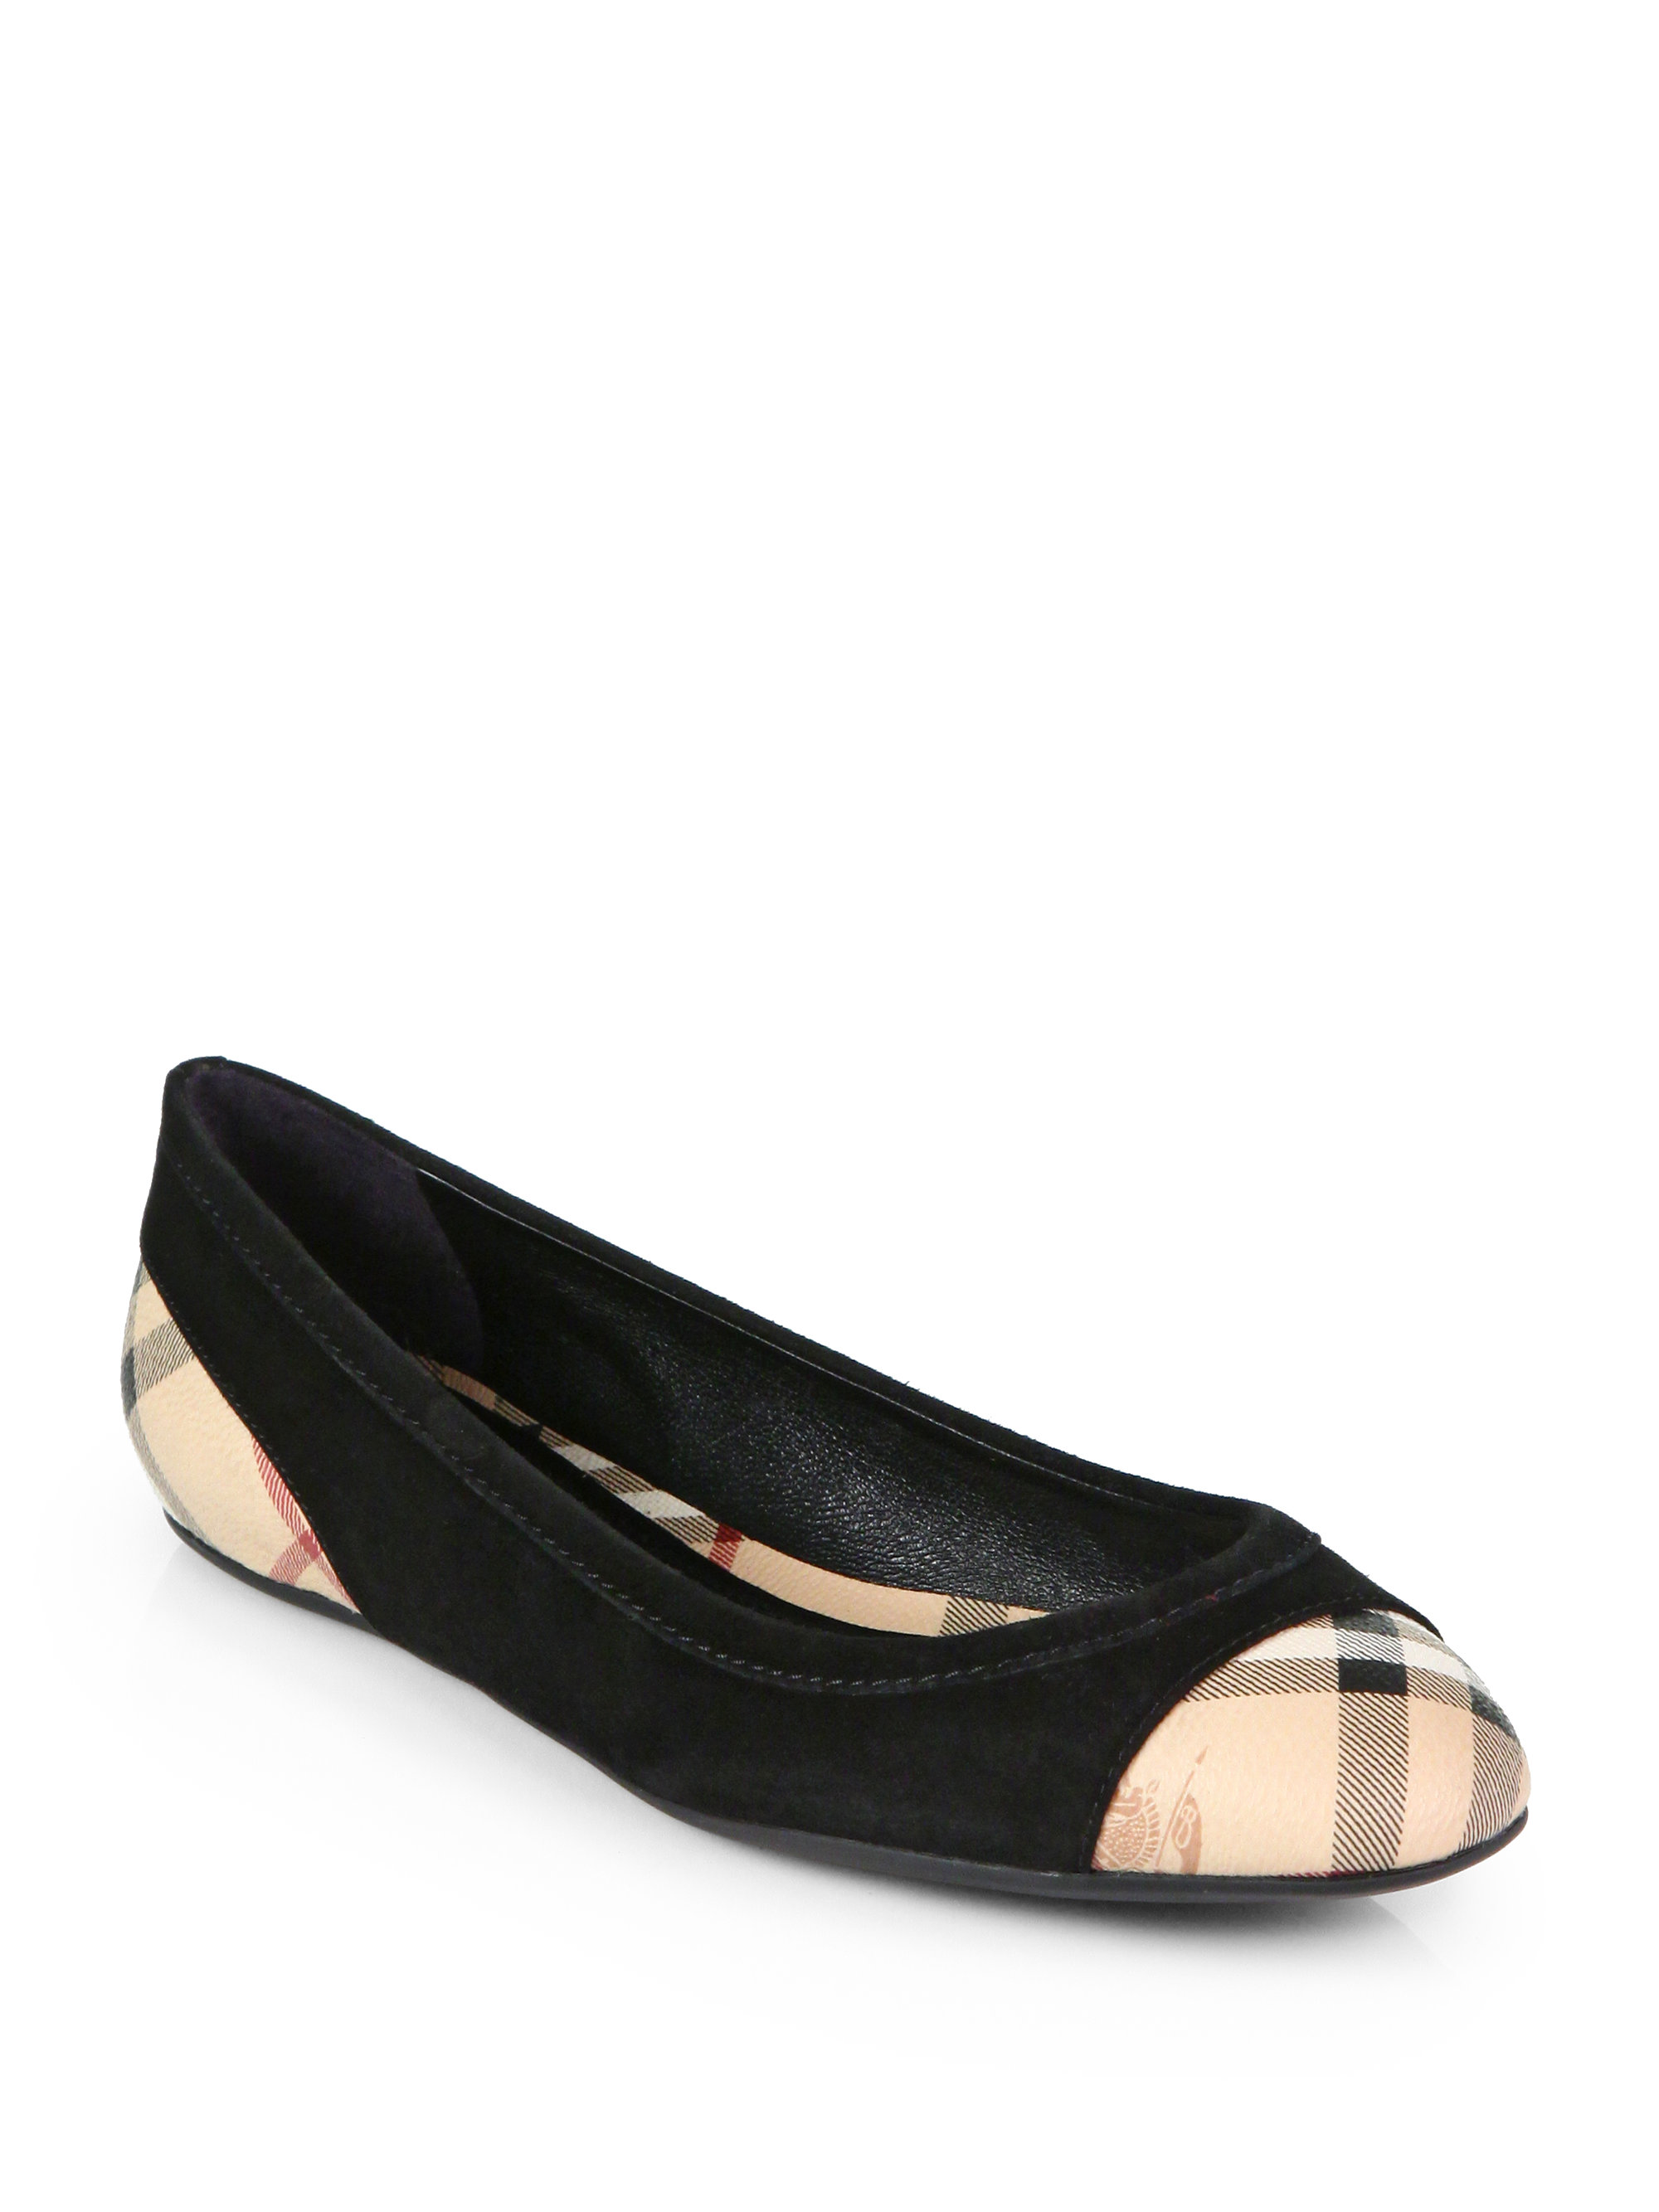 Burberry Chaussures Plates dR7Ur